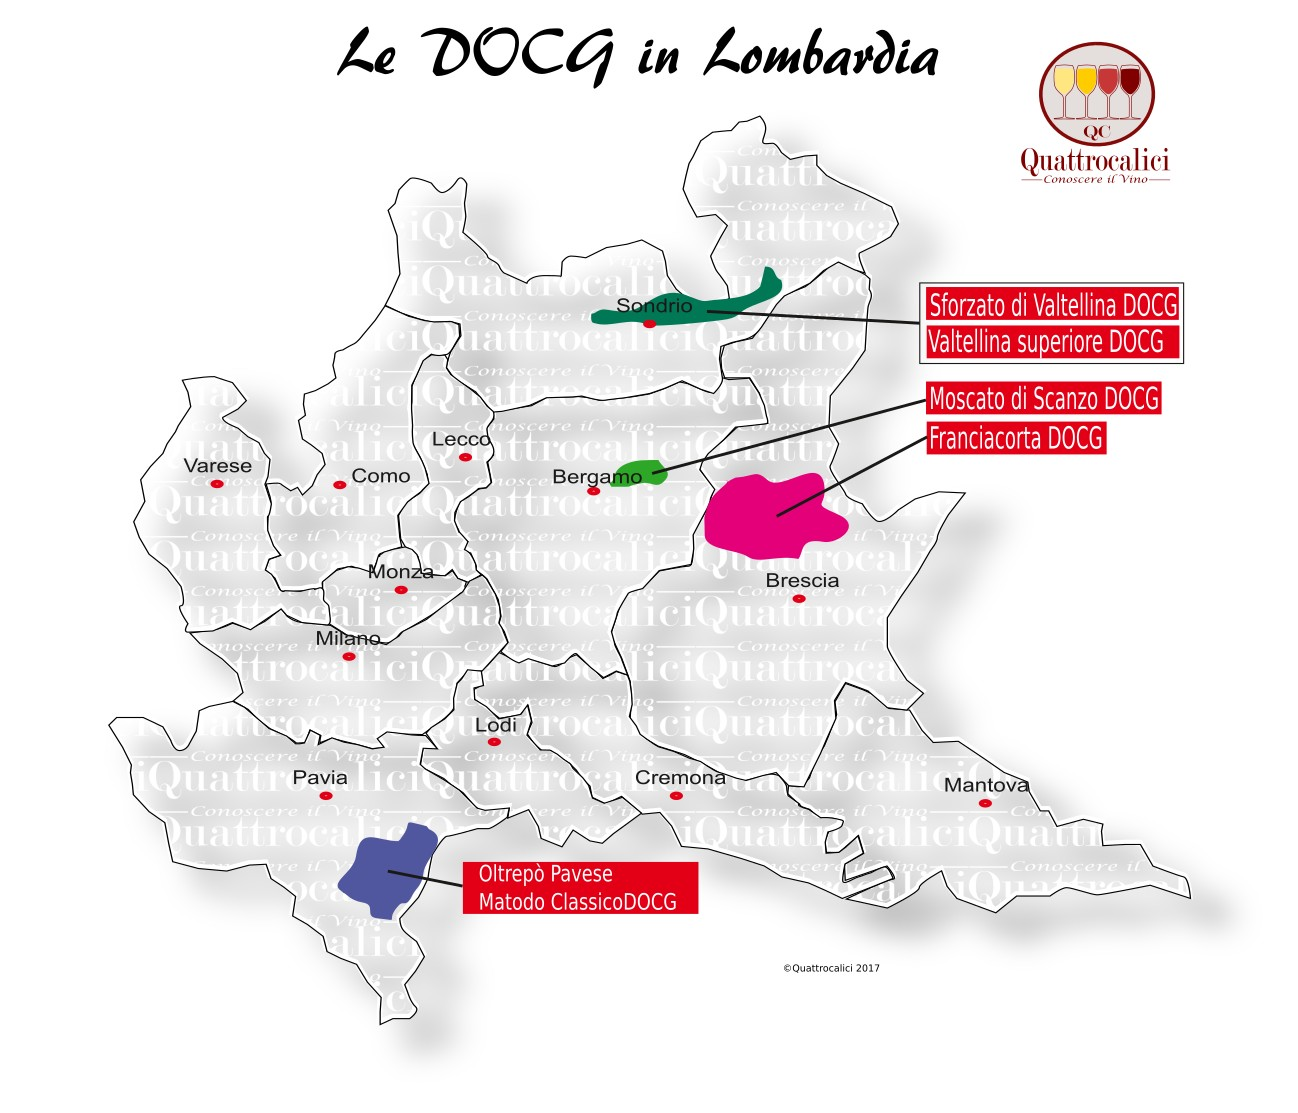 Le DOCG in Lombardia